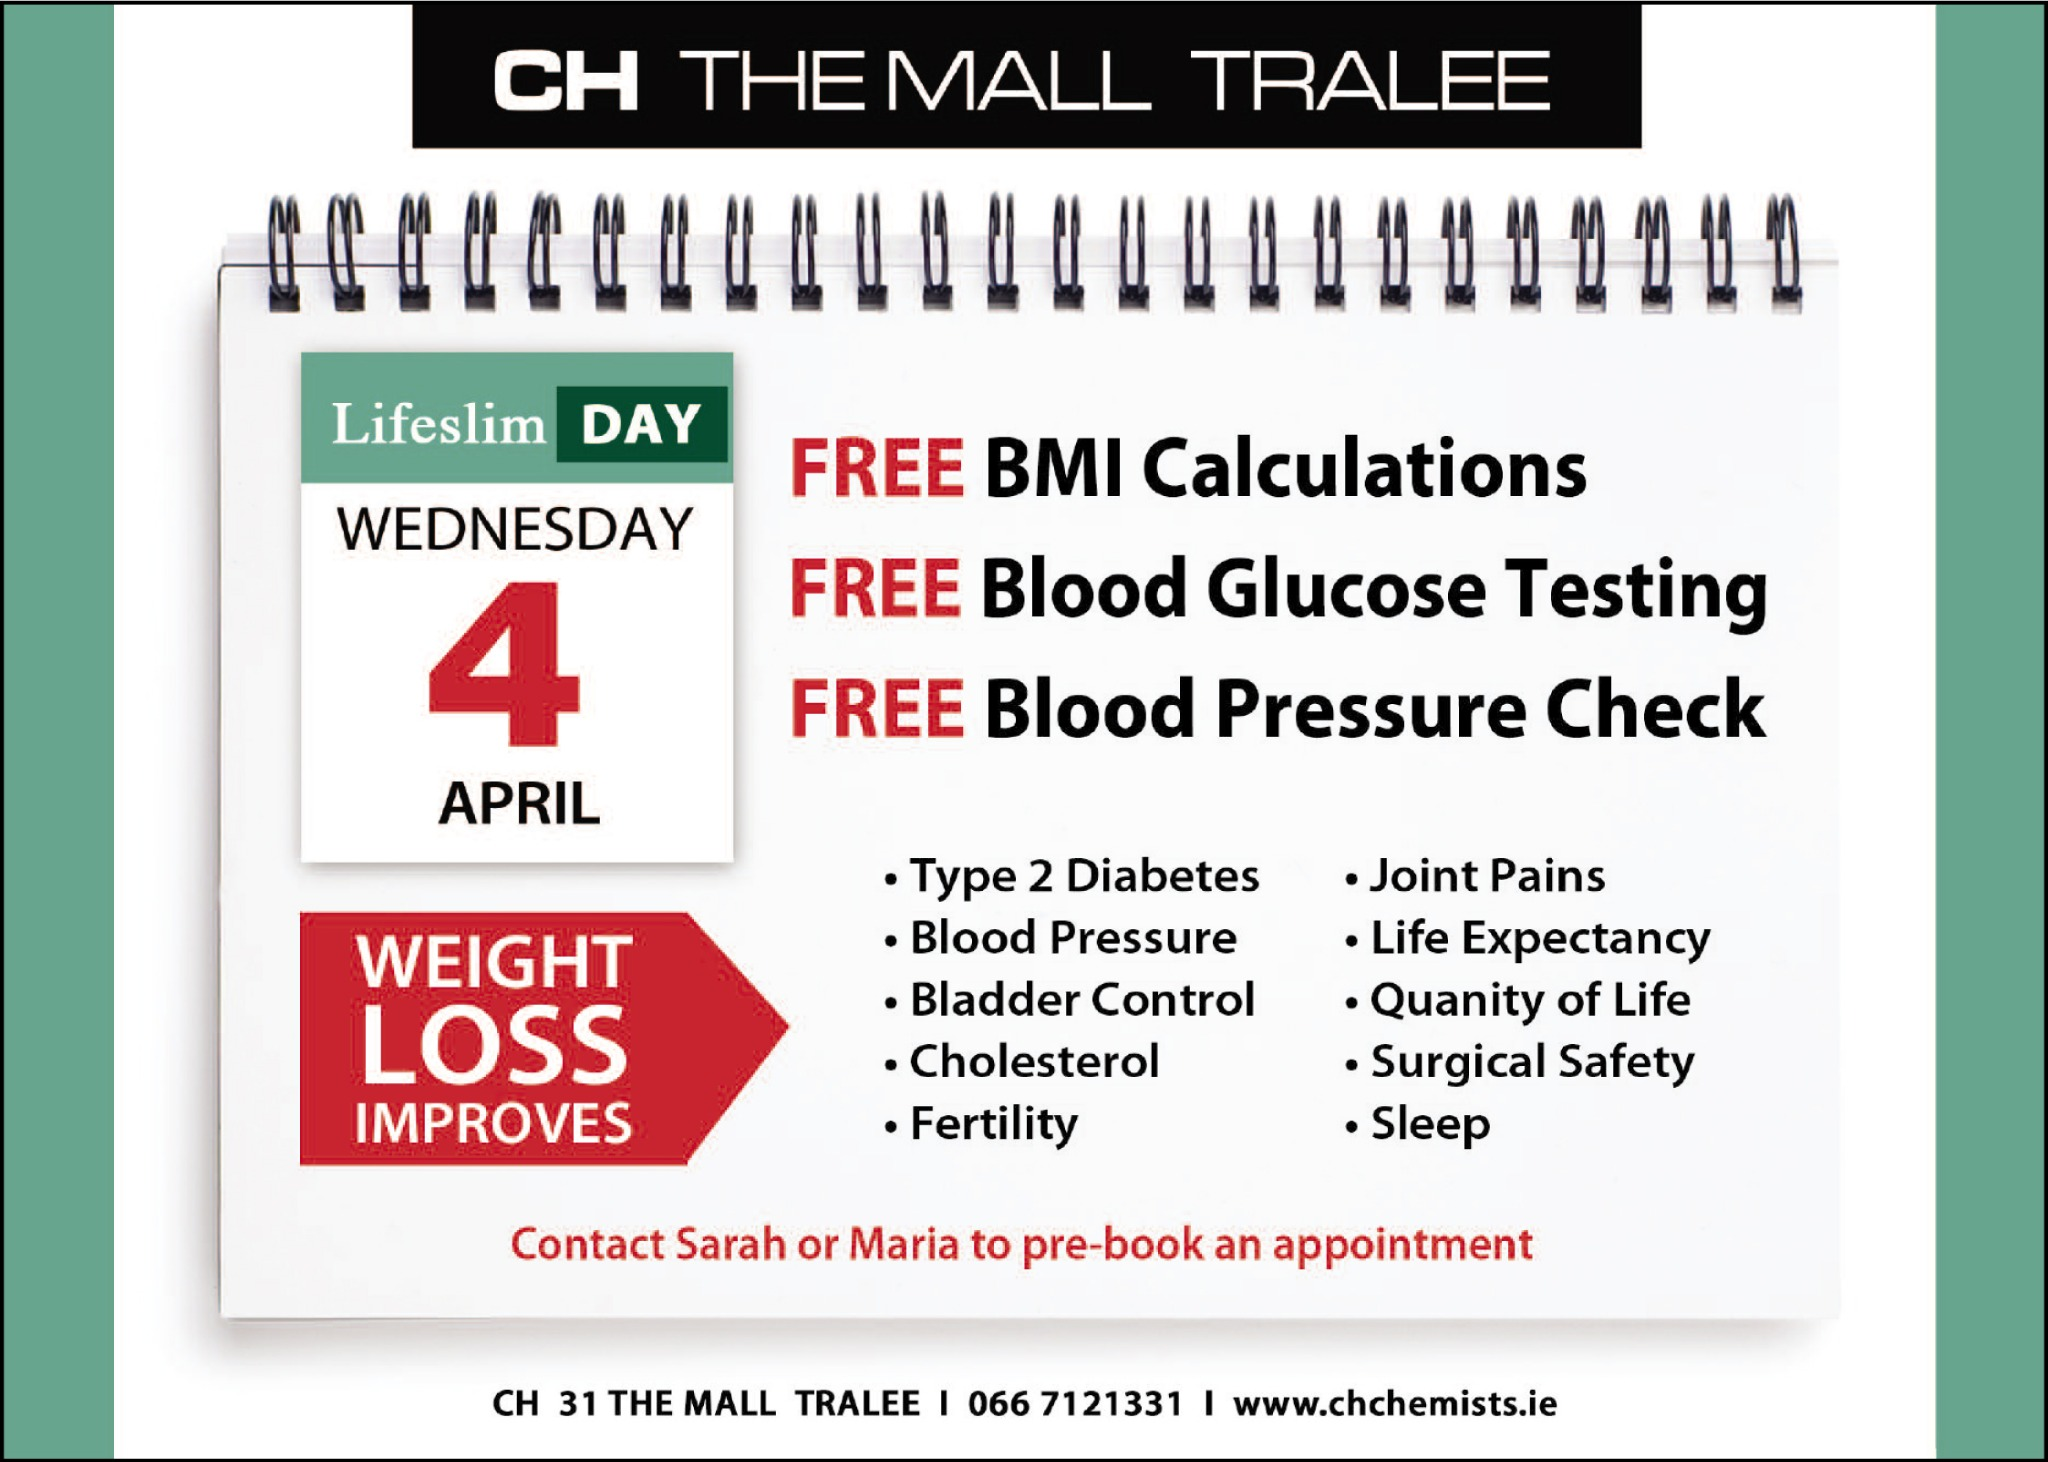 Lifeslim Day tomorrow instore. which will include FREE BMI calculations,Blood Glucose testing and blood pressure checks http://t.co/G0bvvxtT